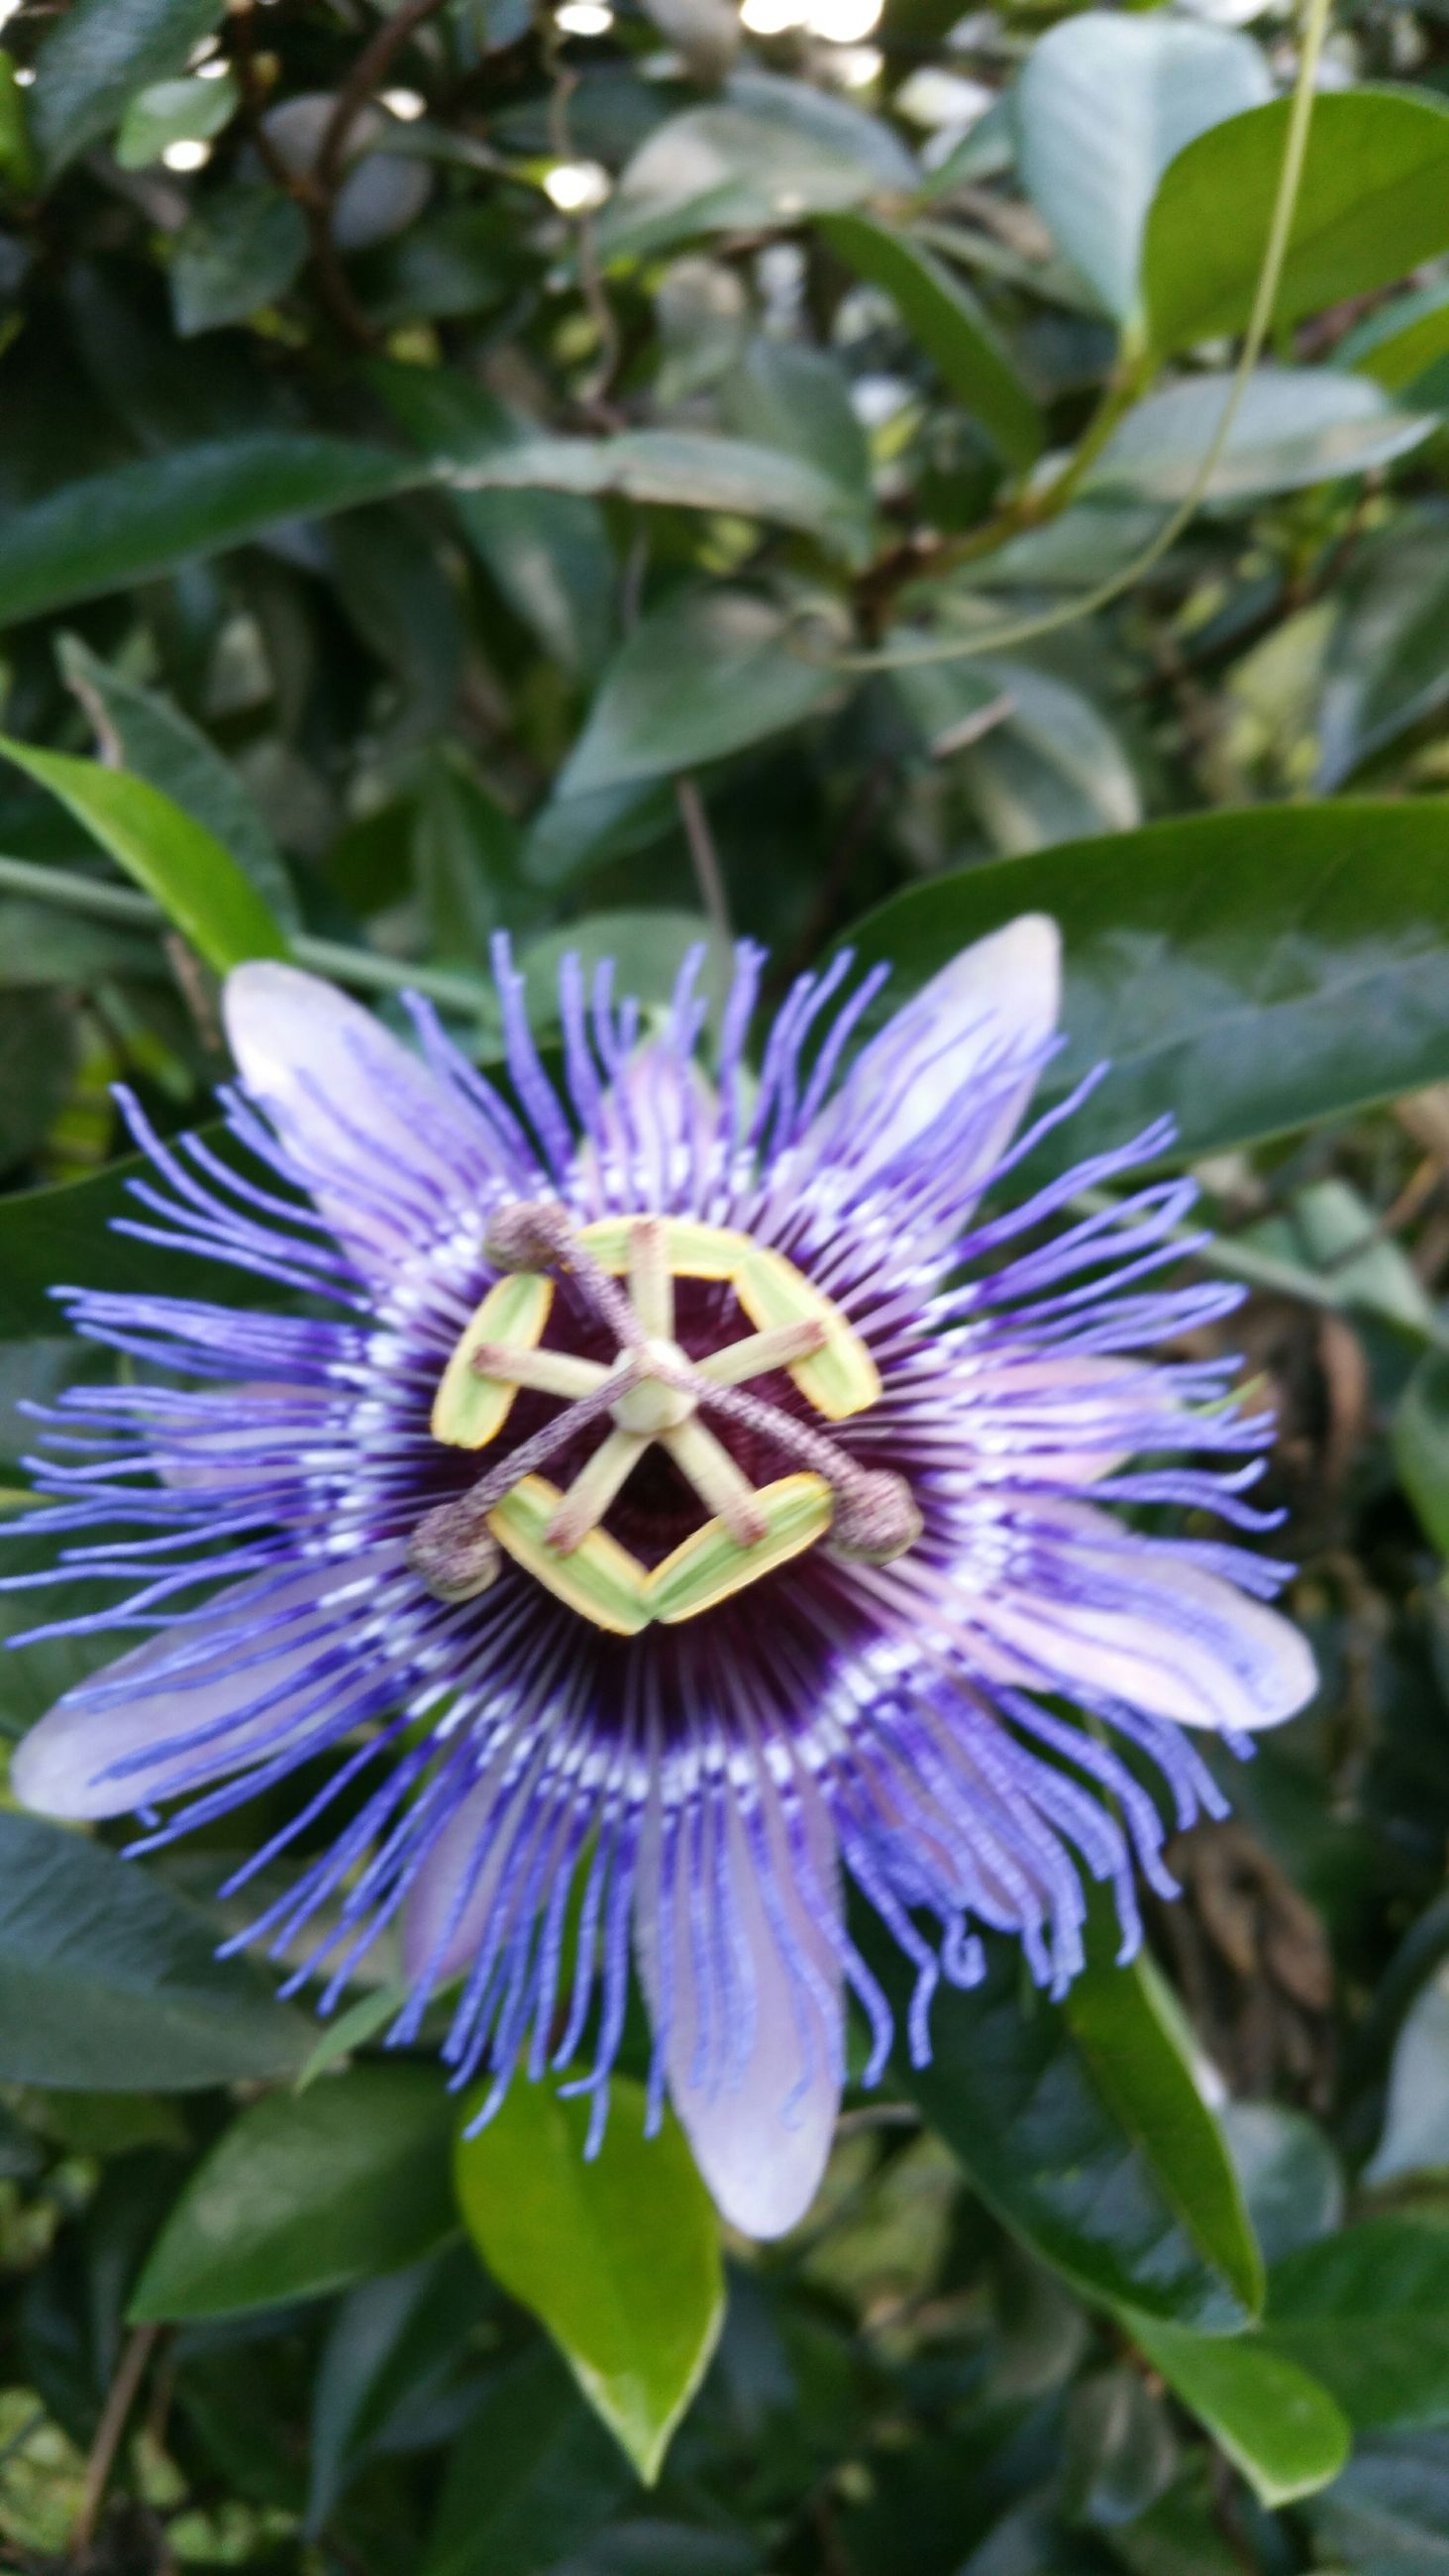 flower, purple, freshness, petal, fragility, flower head, growth, close-up, beauty in nature, blooming, focus on foreground, single flower, nature, pollen, plant, in bloom, blue, passion flower, leaf, high angle view